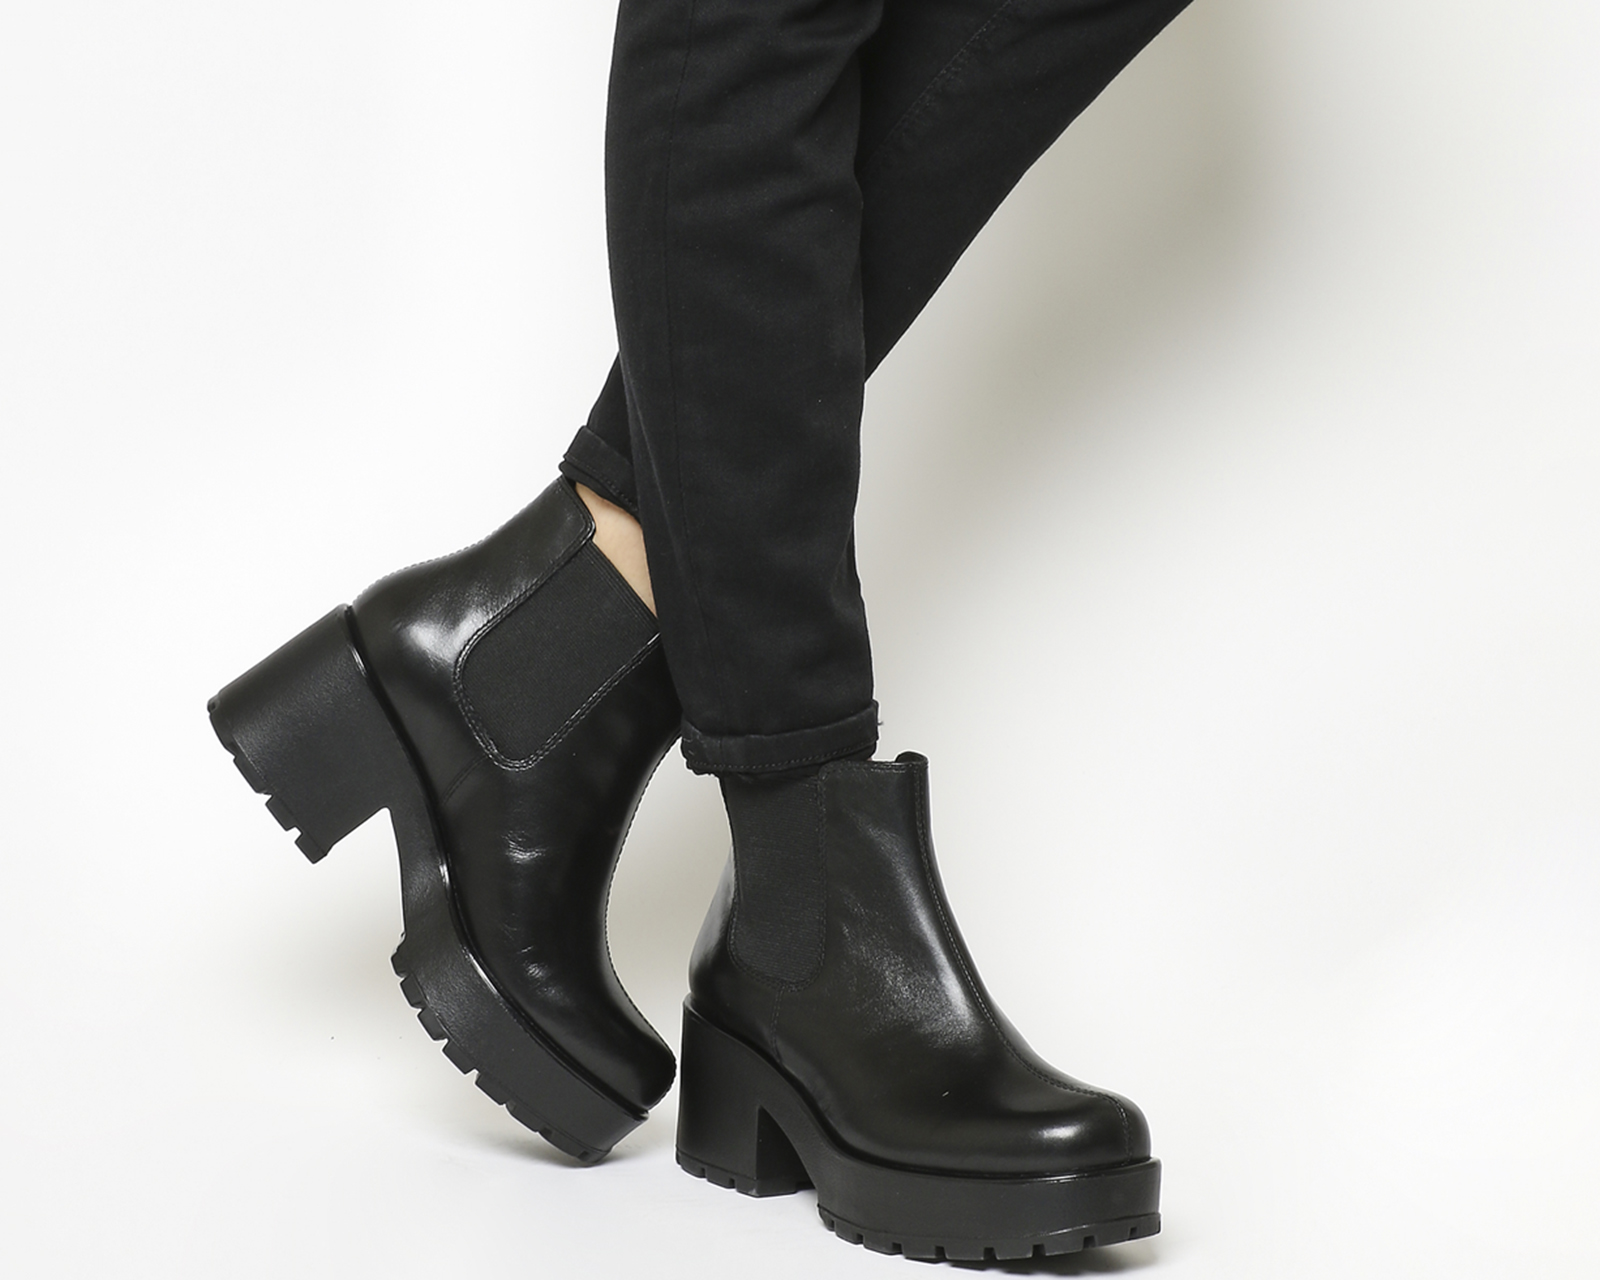 f859c21283 Details about Womens Vagabond Dioon Elastic Chelsea Boots Exclusive Black  Leather Boots